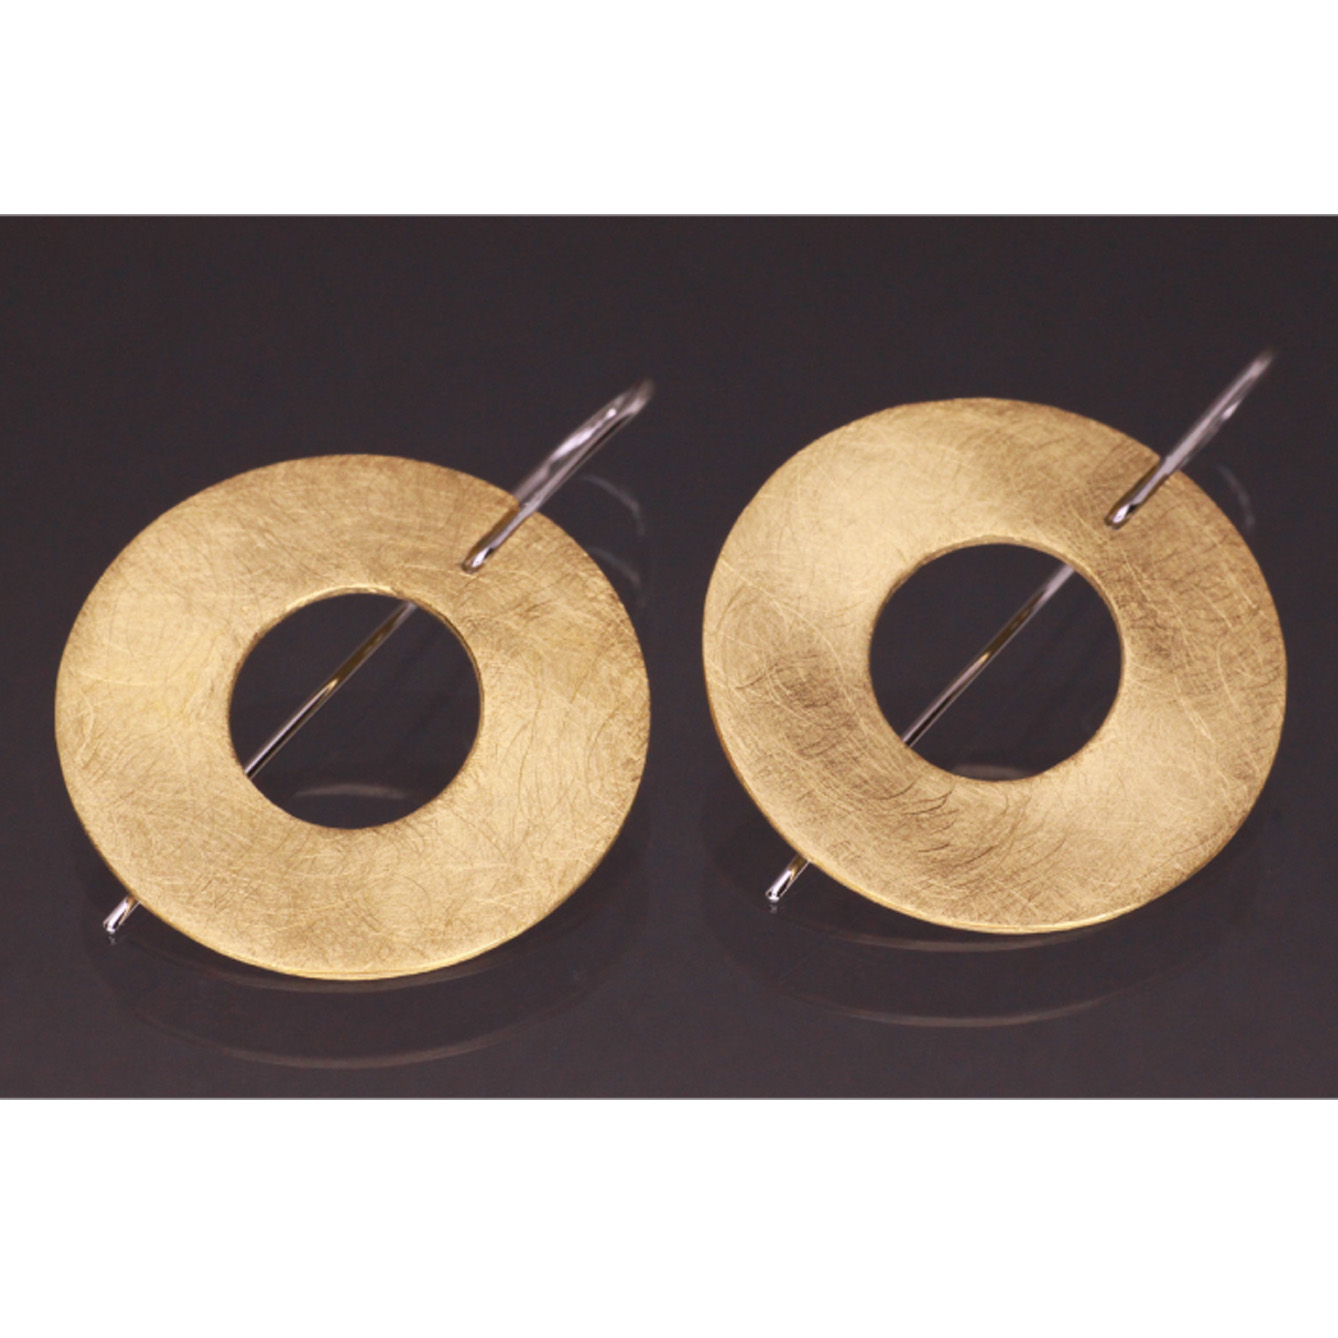 Lindenau Gold Plated Flattened Disk Earrings